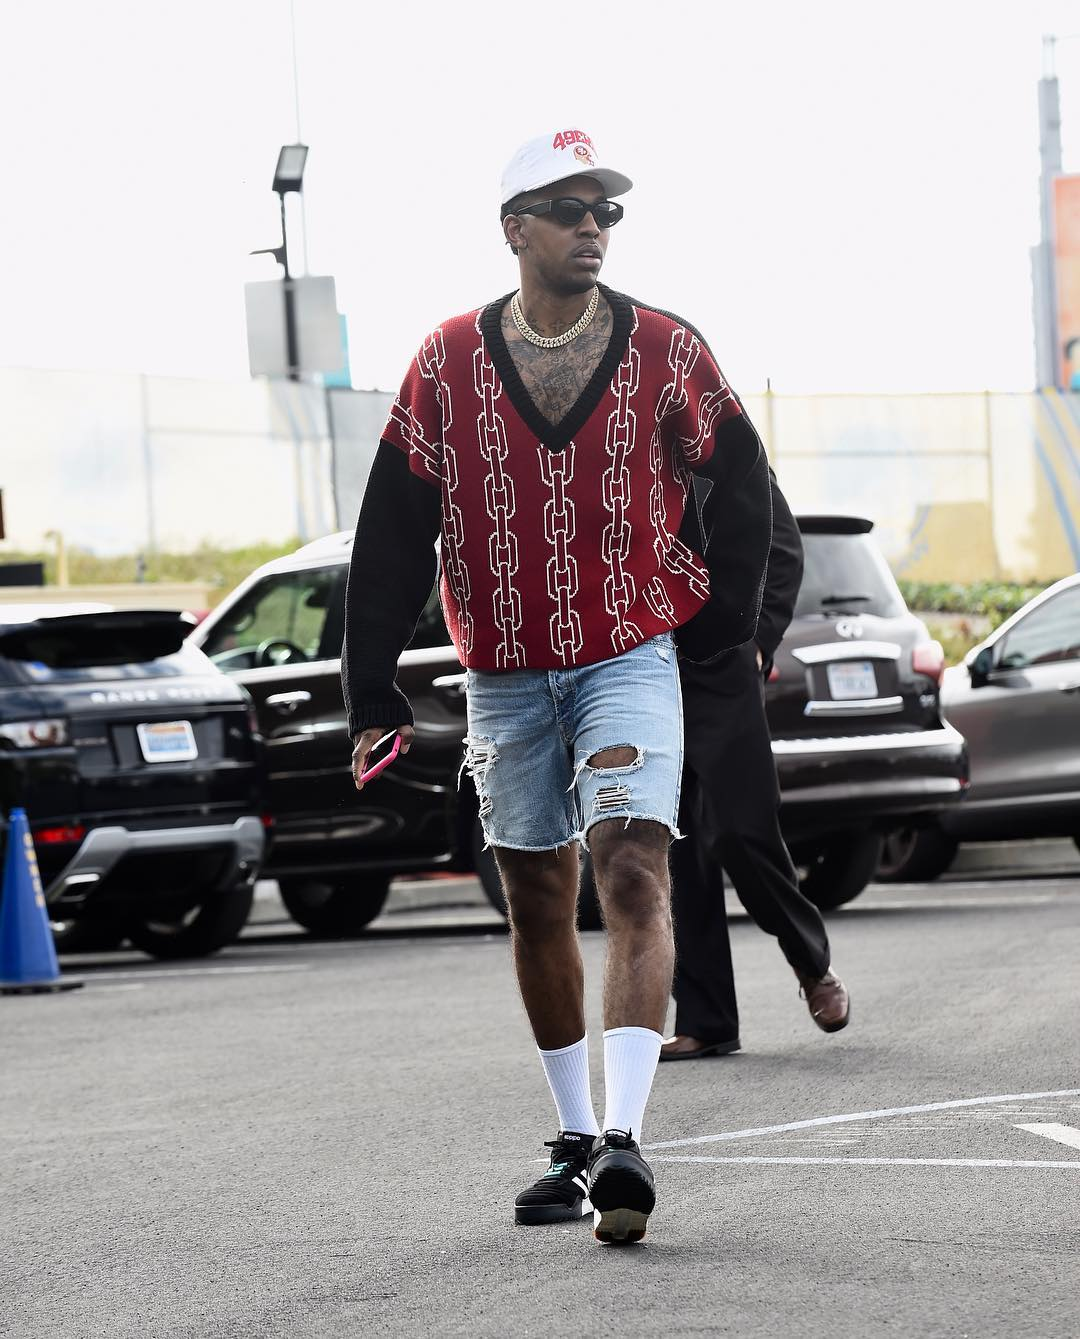 SPOTTED: Nick Young in Enfants Riches Déprimés, FEAR OF GOD and Alexander Wang x adidas Originals